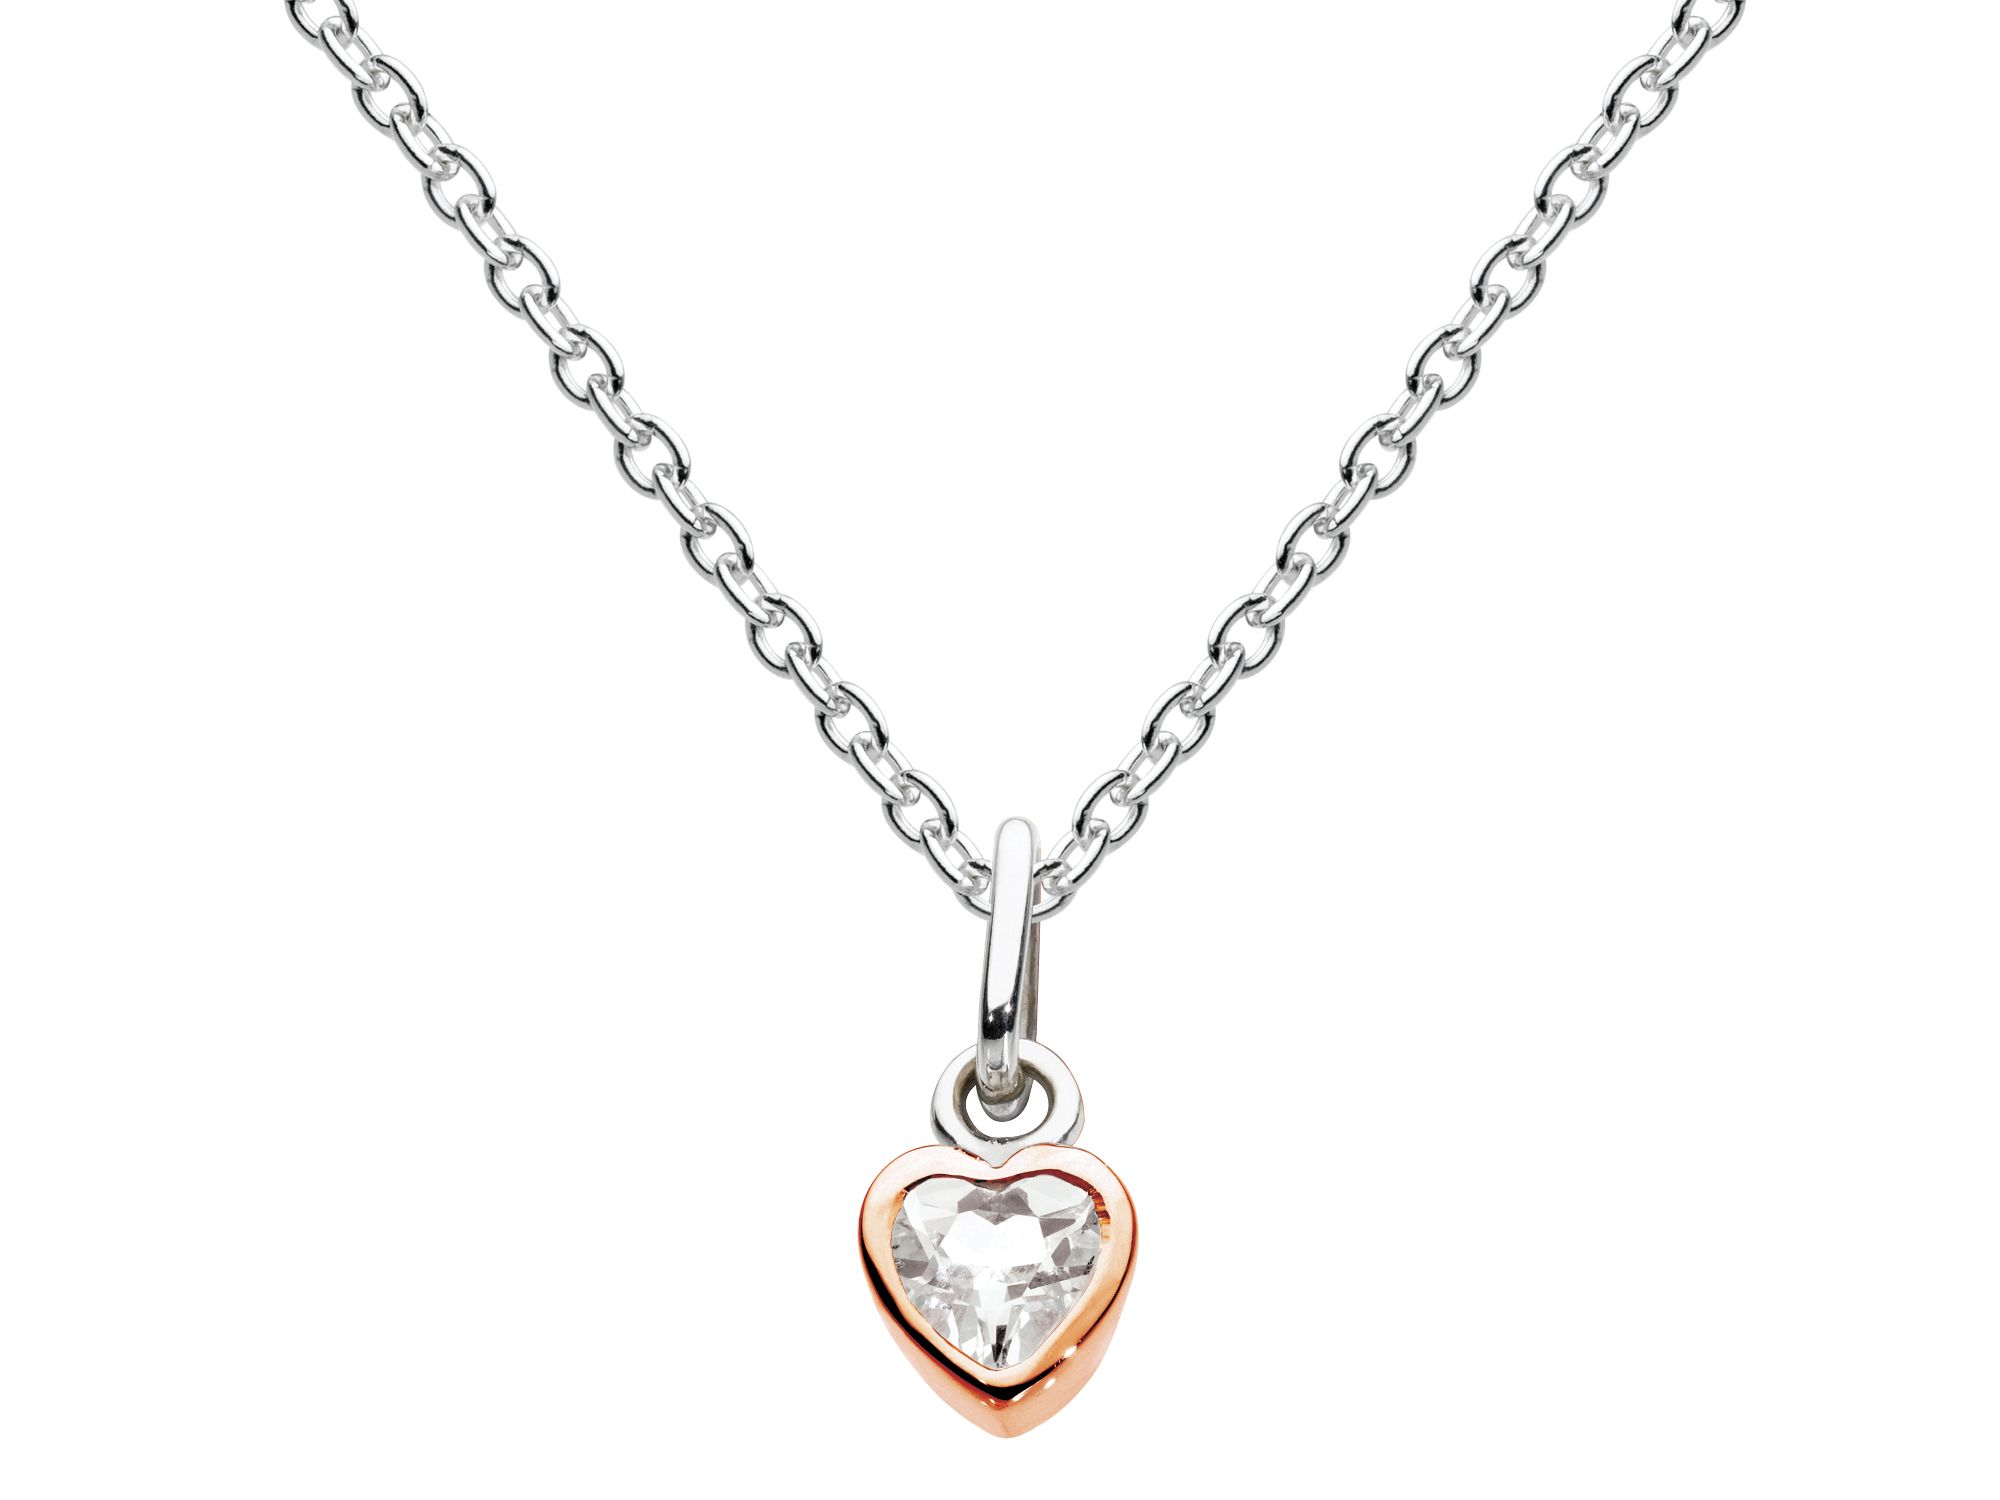 Rose gold plate small heart pendant